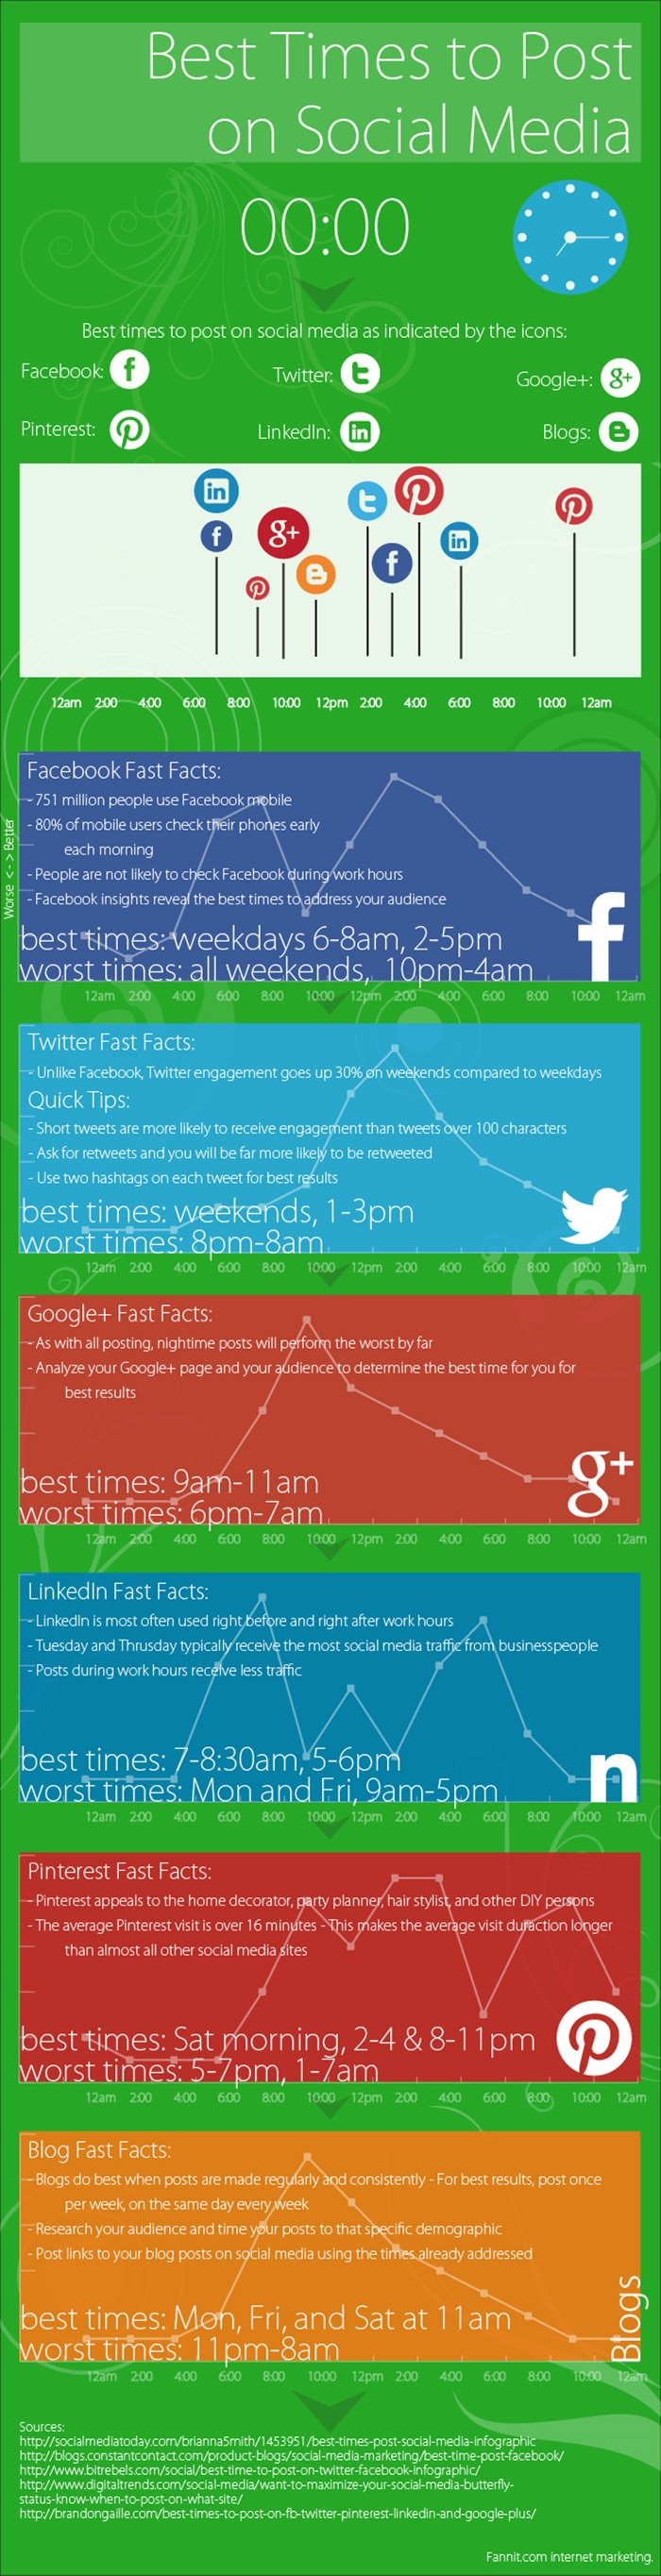 social-media-infographic-when-are-the-best-times-to-post